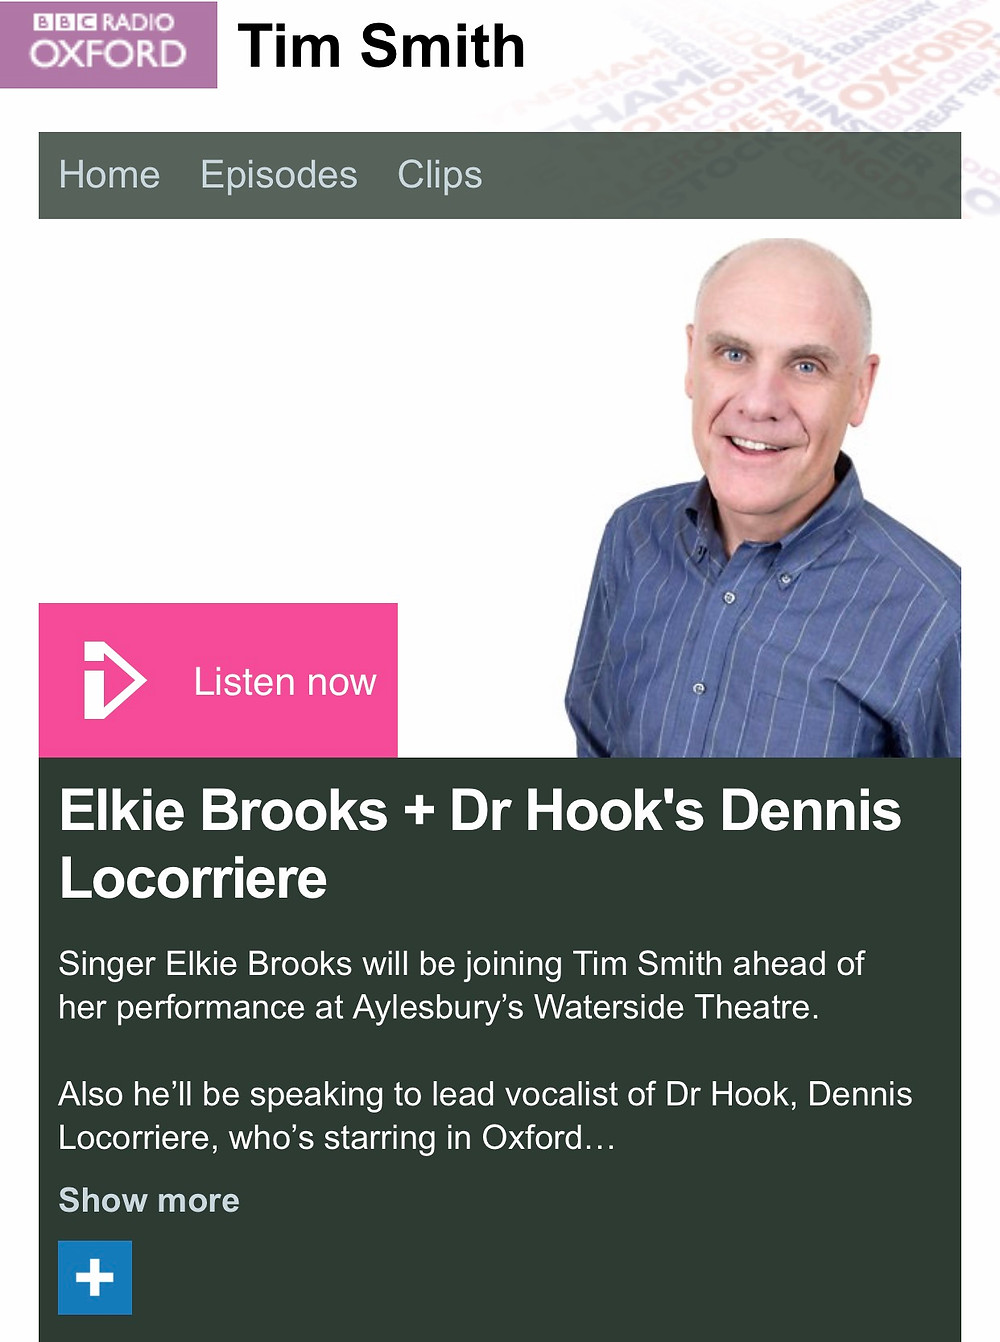 Dennis Locorriere Dr Hook | Live On BBC Radio Oxford | 28.10.17